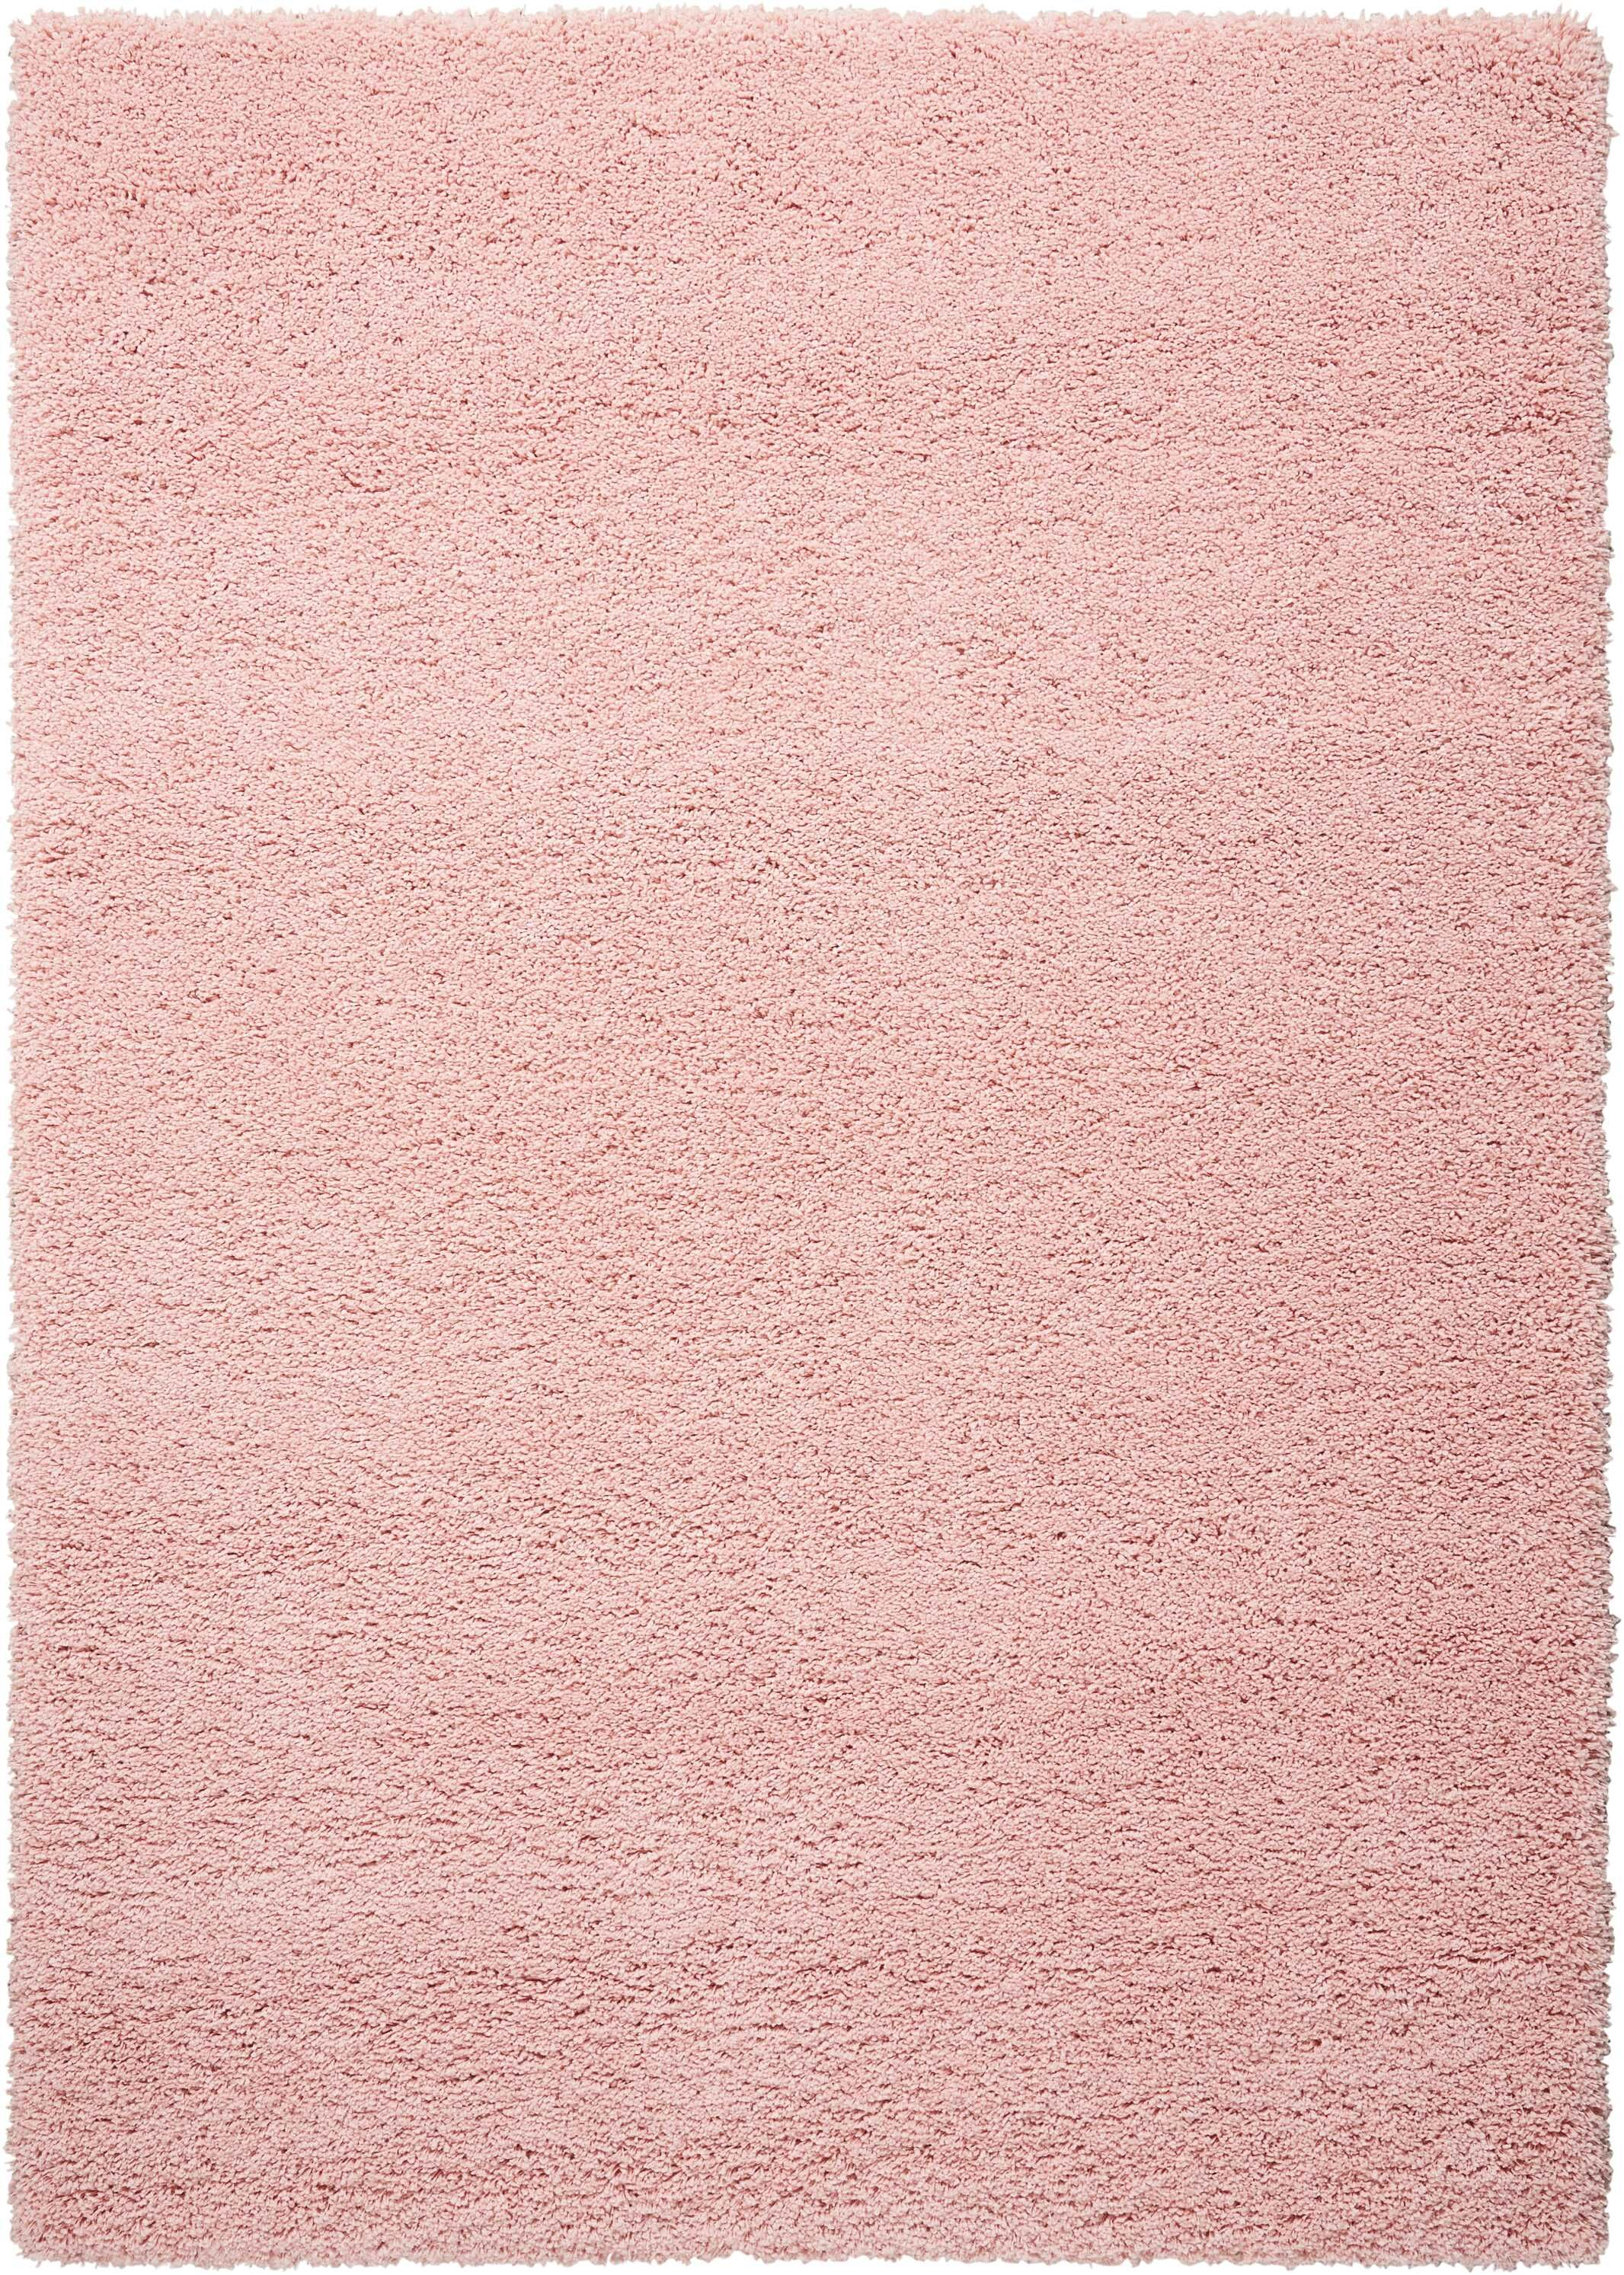 Shelley Blush Area Rug Rug Size: Rectangle 7'10